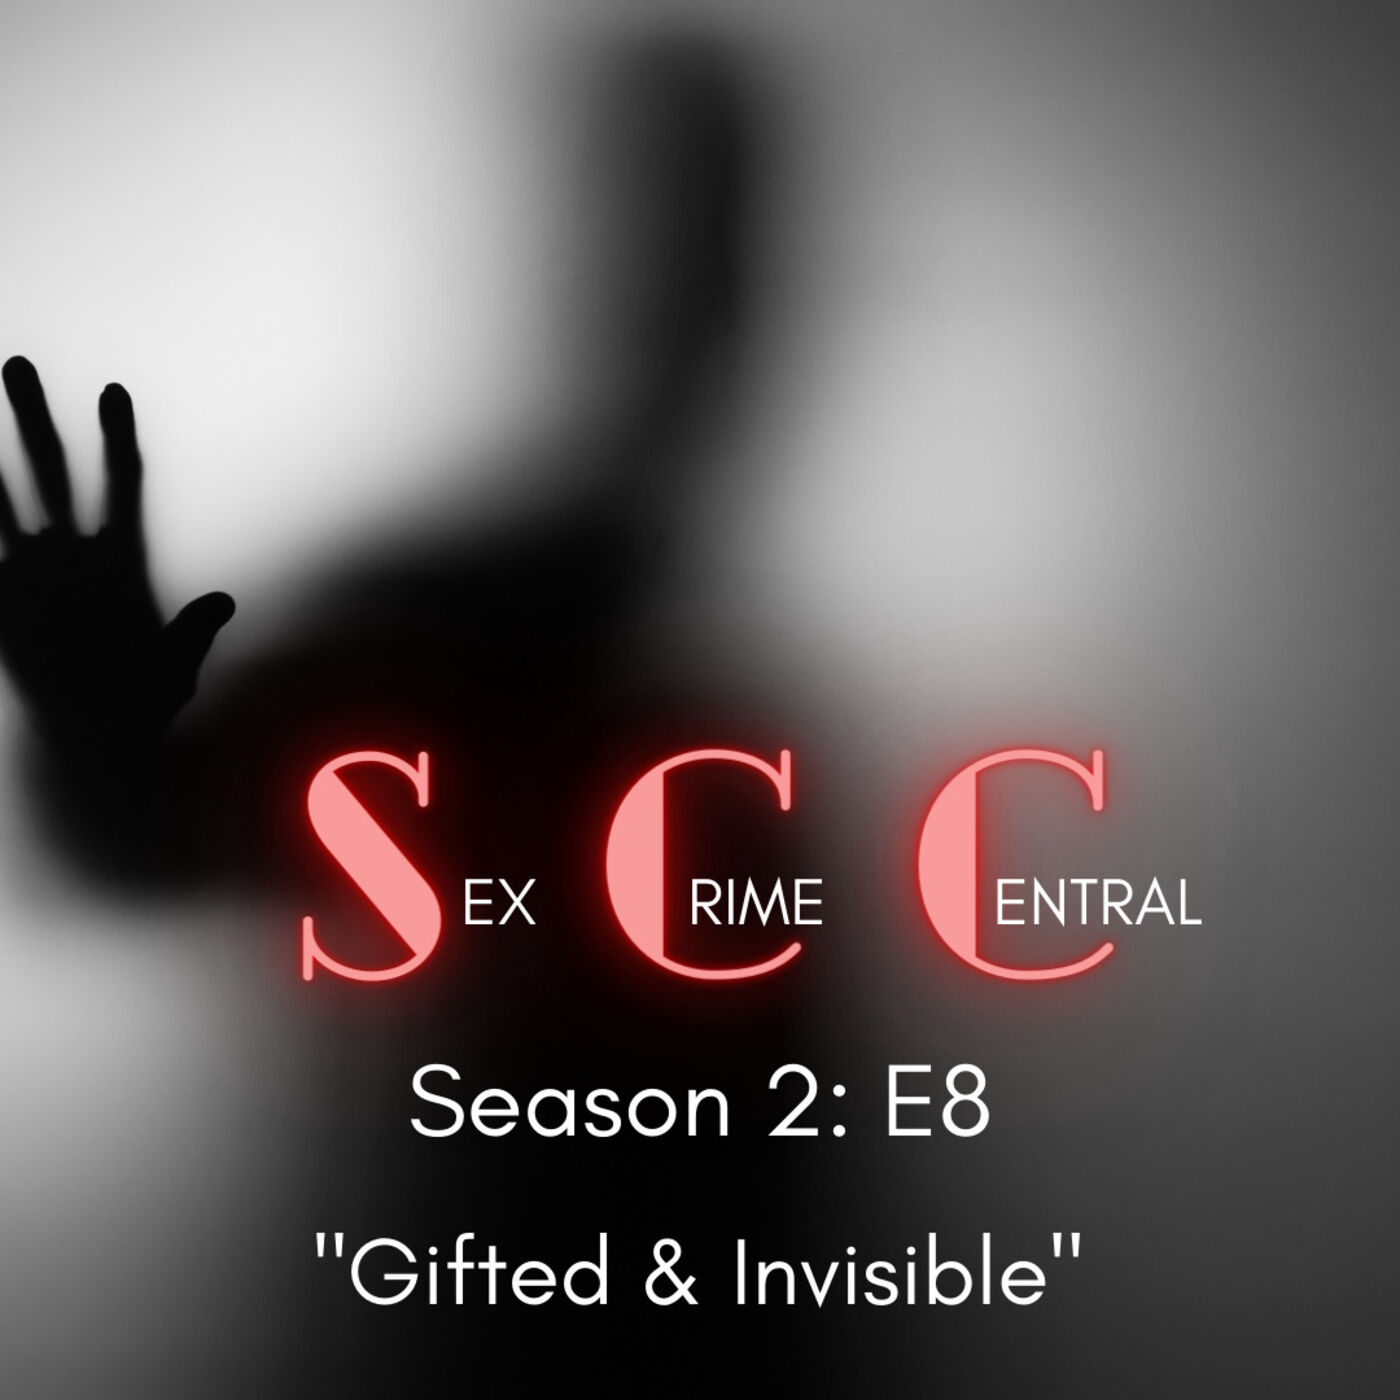 Gifted & Invisible